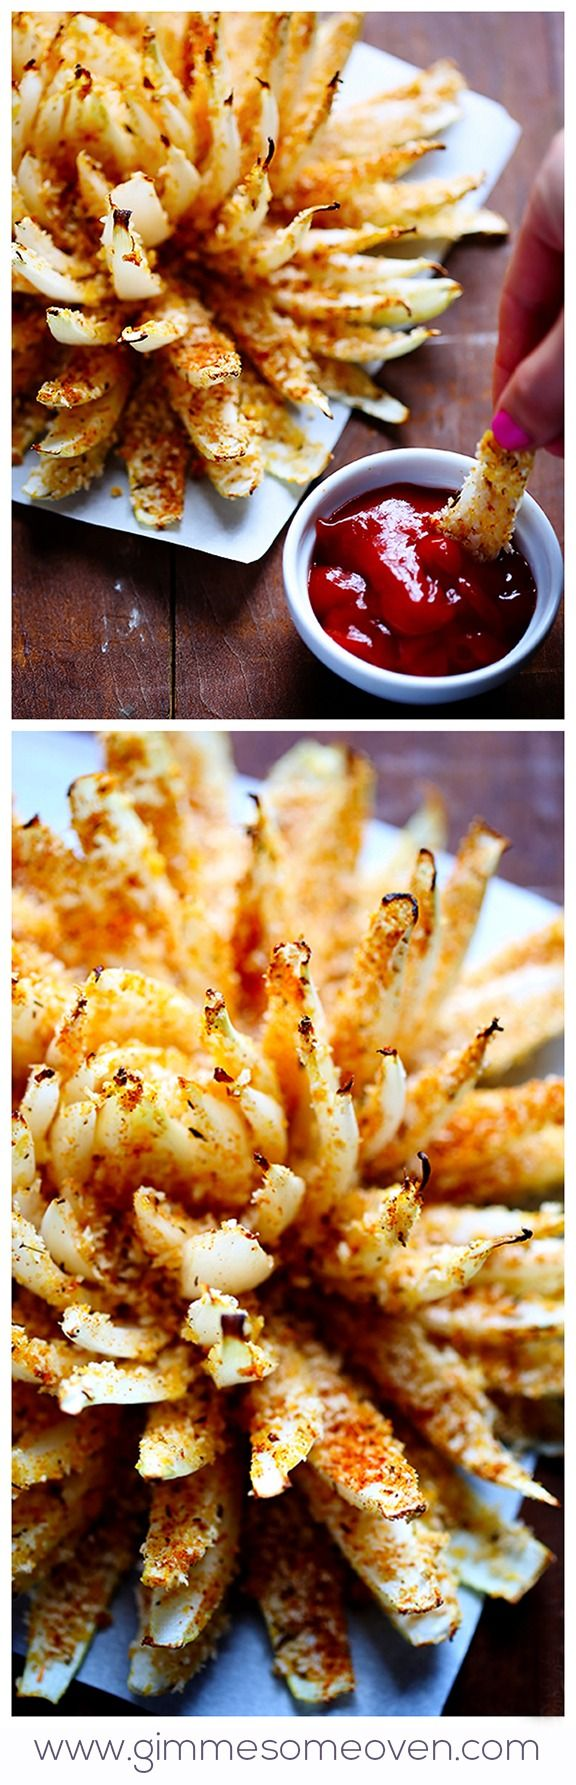 Baked Blooming Onion -- it's crispy, it's flavorful, and it's WAY healthier than the fried restaurant version!